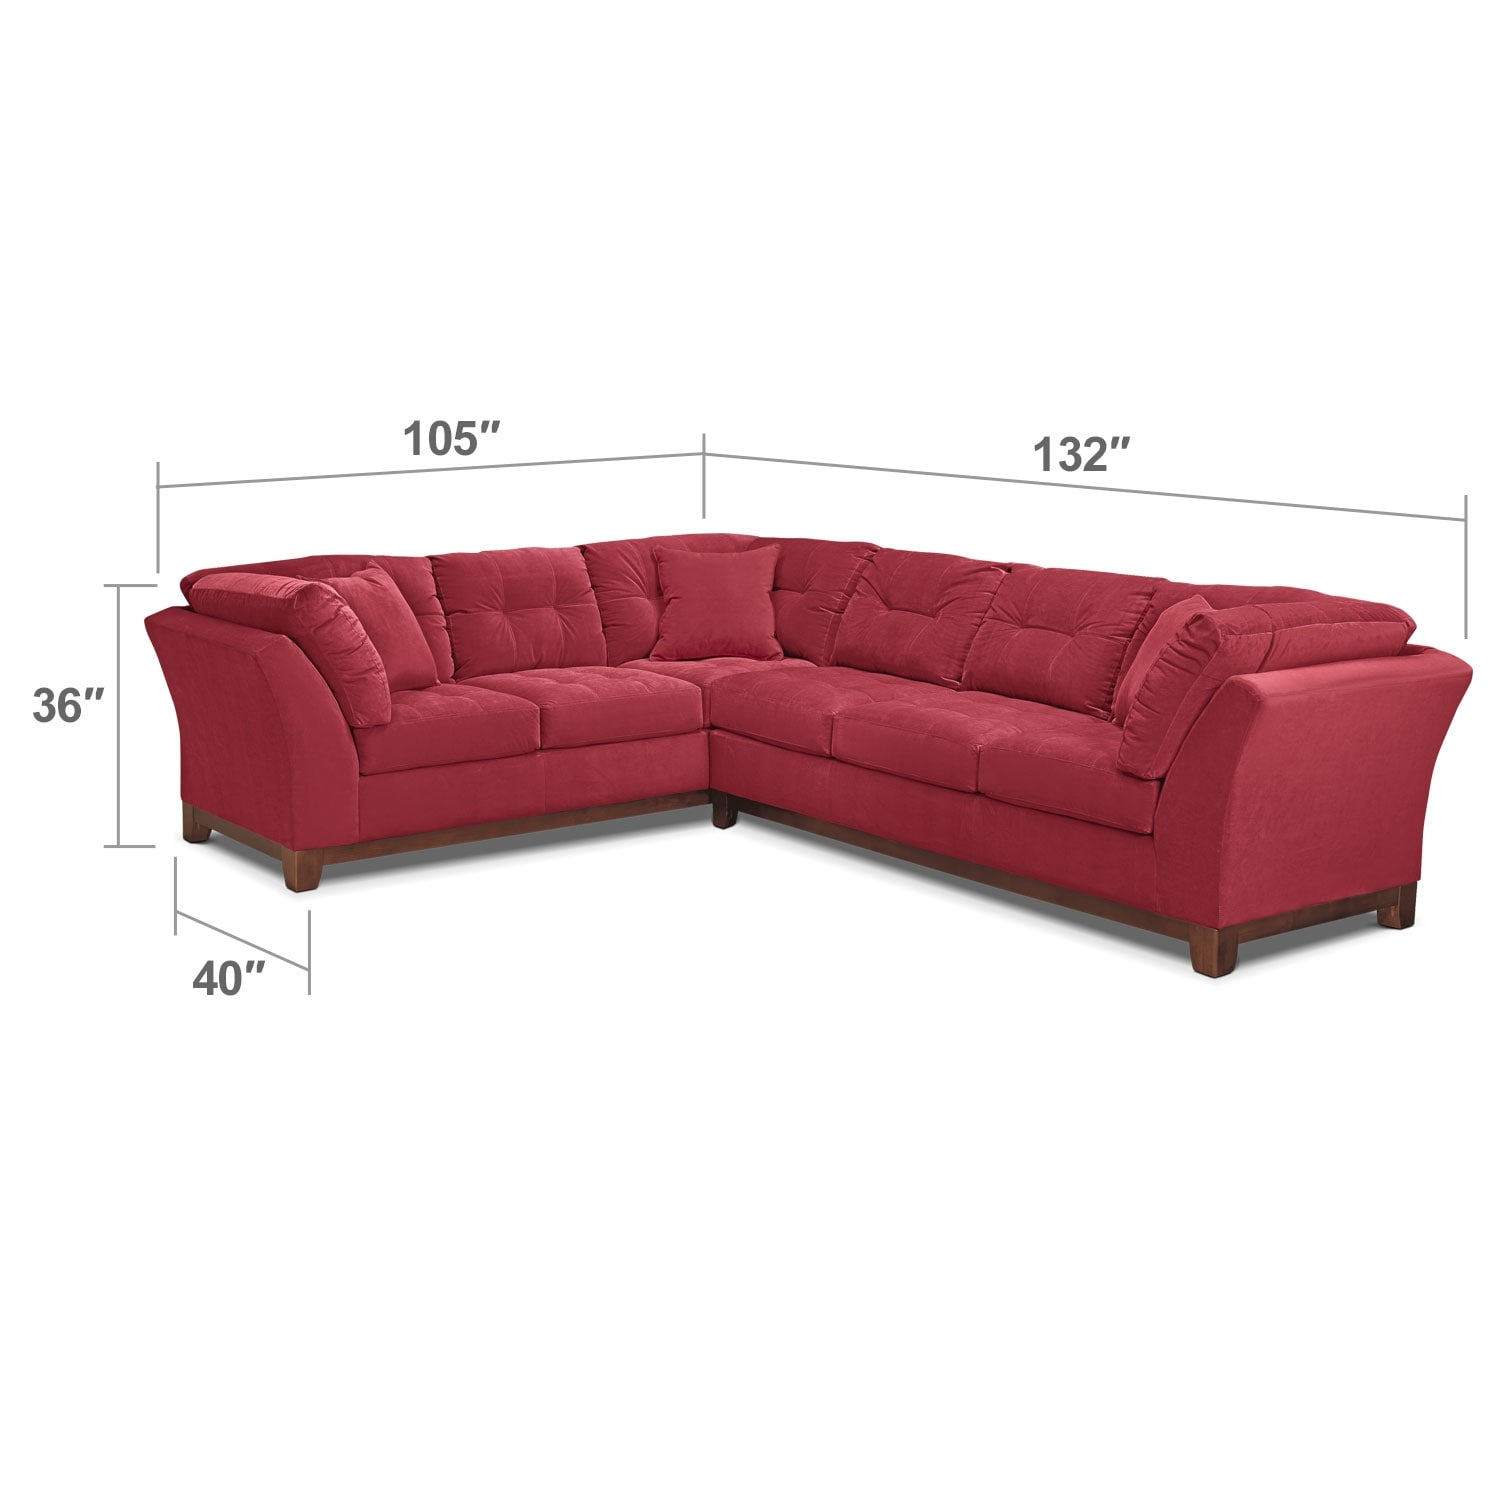 "Living Room Furniture - Solace 2-Piece Right-Facing 132"" Sofa Sectional - Poppy"